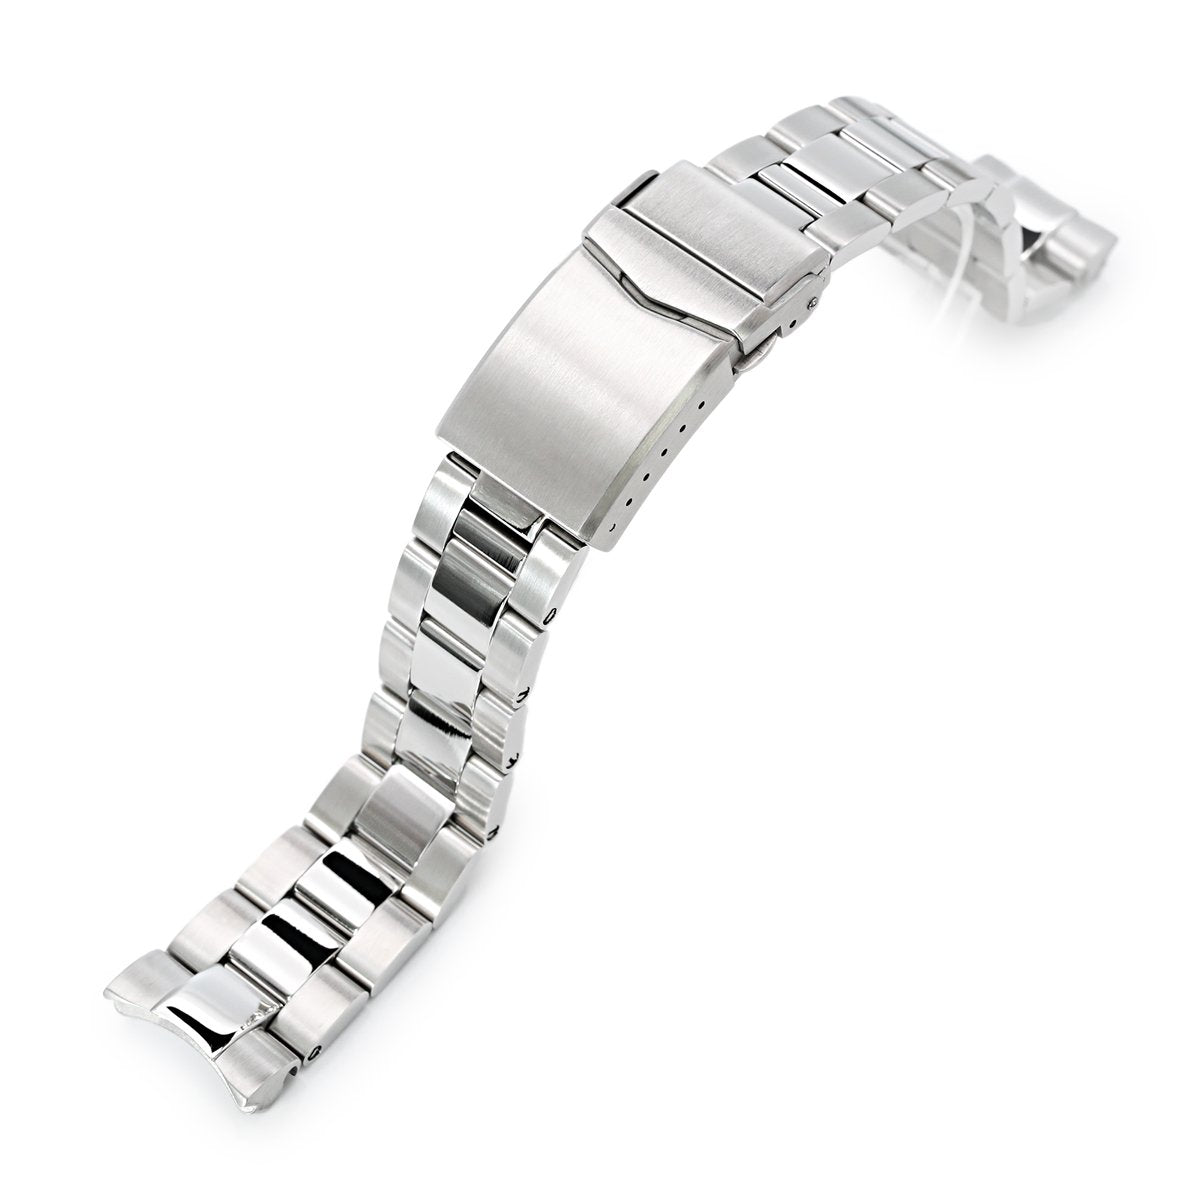 20mm Super-O Boyer 316L Stainless Steel Watch Bracelet for Seiko Mini Turtles SRPC35 V-Clasp Polished & Brushed Strapcode Watch Bands